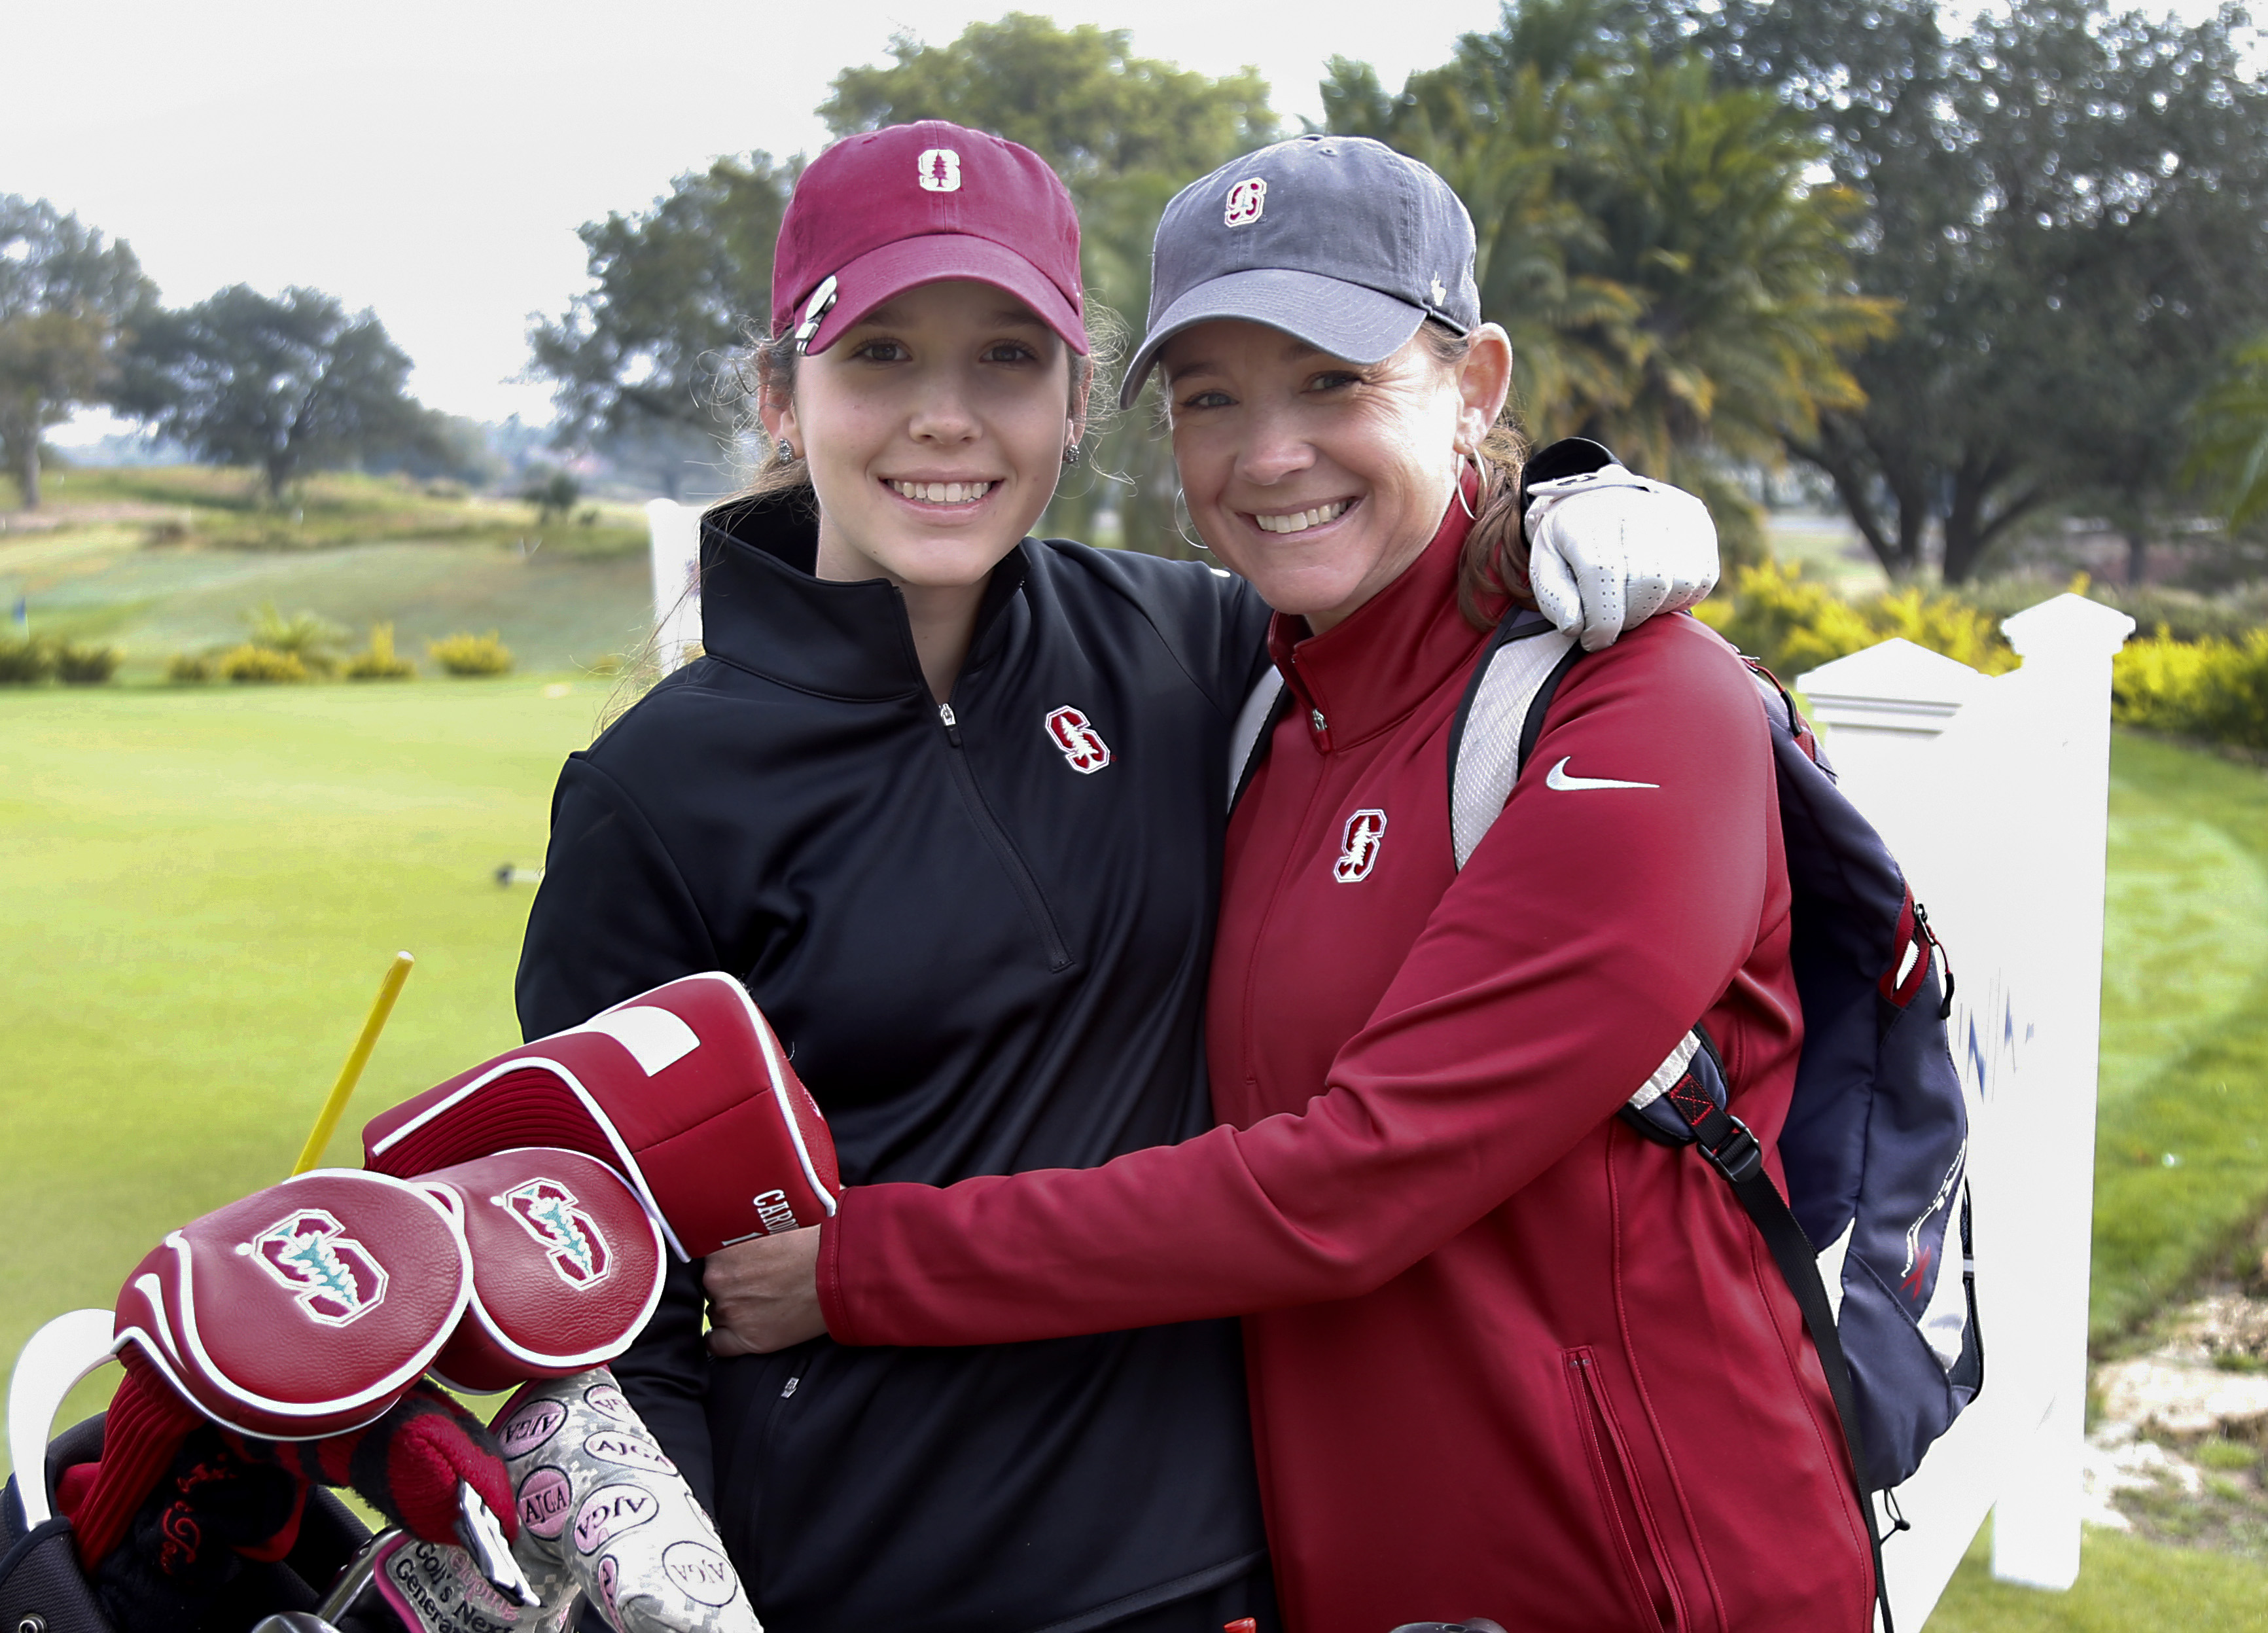 Feb 18, 2017; Reunion, FL, USA;  Racheal Heck (left) poses with her mother during the 2017 ANNIKA Intercollegiate NCAA women's golf tournament Presented by 3M . Mandatory Credit: Reinhold Matay-USA TODAY Sports